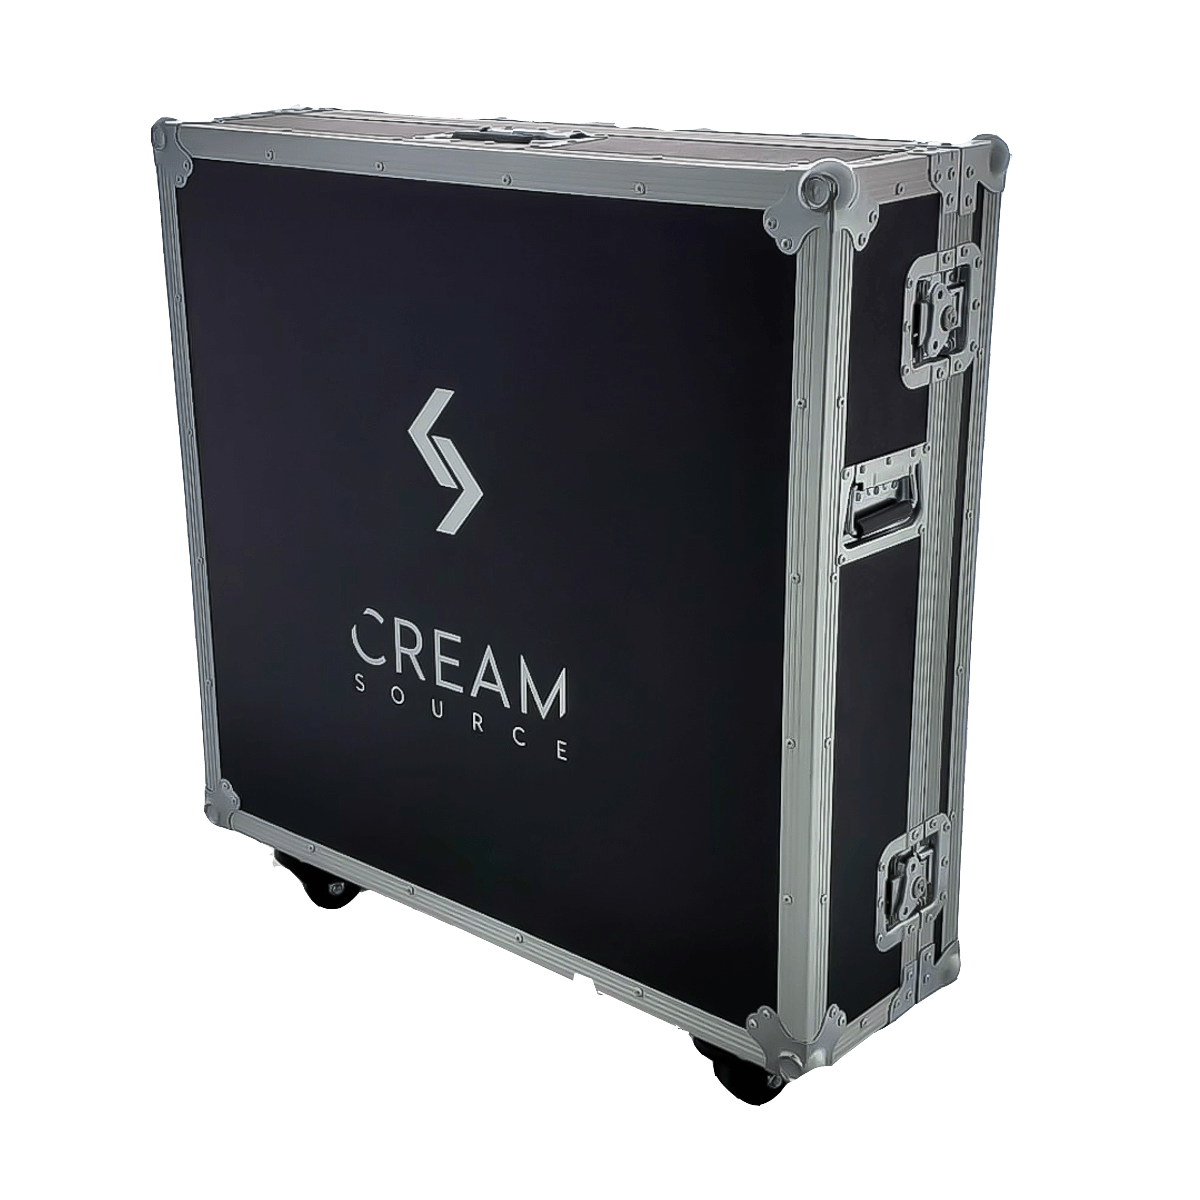 Creamsource SpaceX Hardcase inc Foam